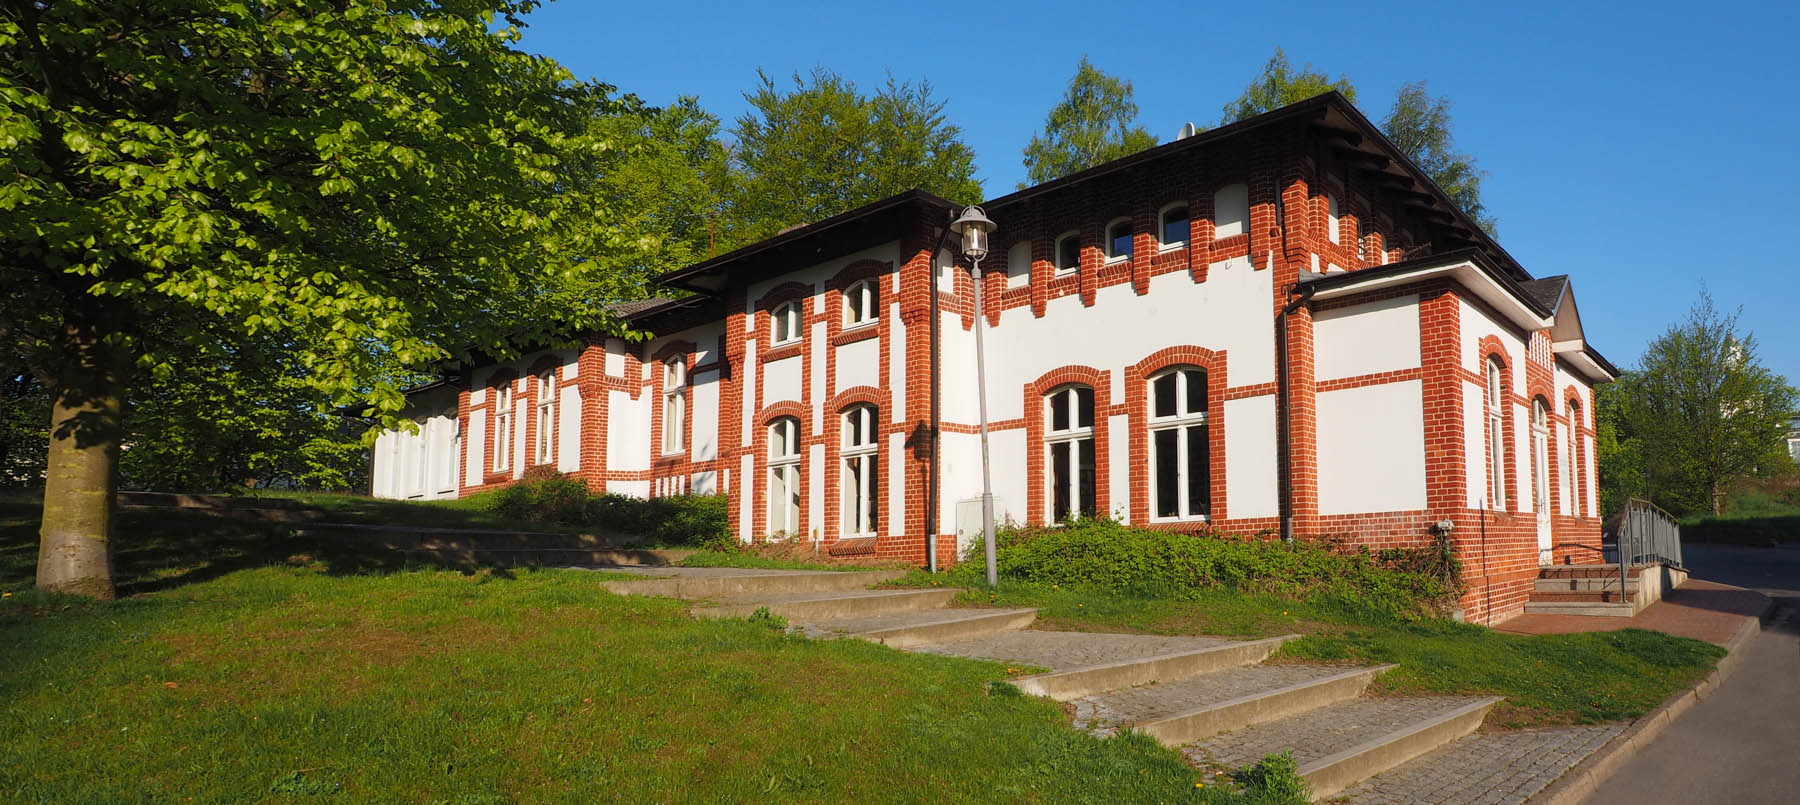 The Maxim Gorki communal library